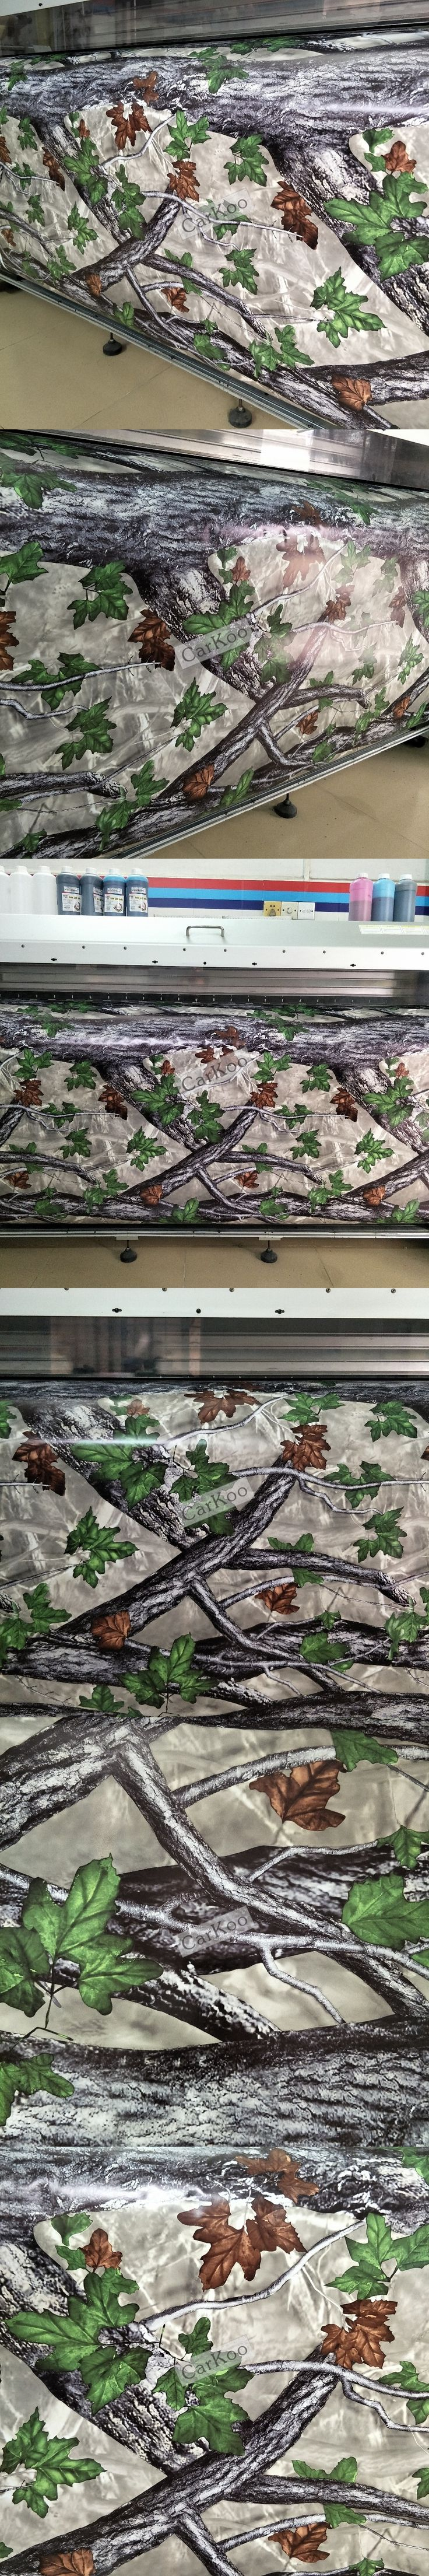 Real tree Camo Wrapping Camo Vinyl Wraps Sheets in Realtree, Bionic Camouflage Pattern For Car Wrap Foil Sticker Vehicle Truck